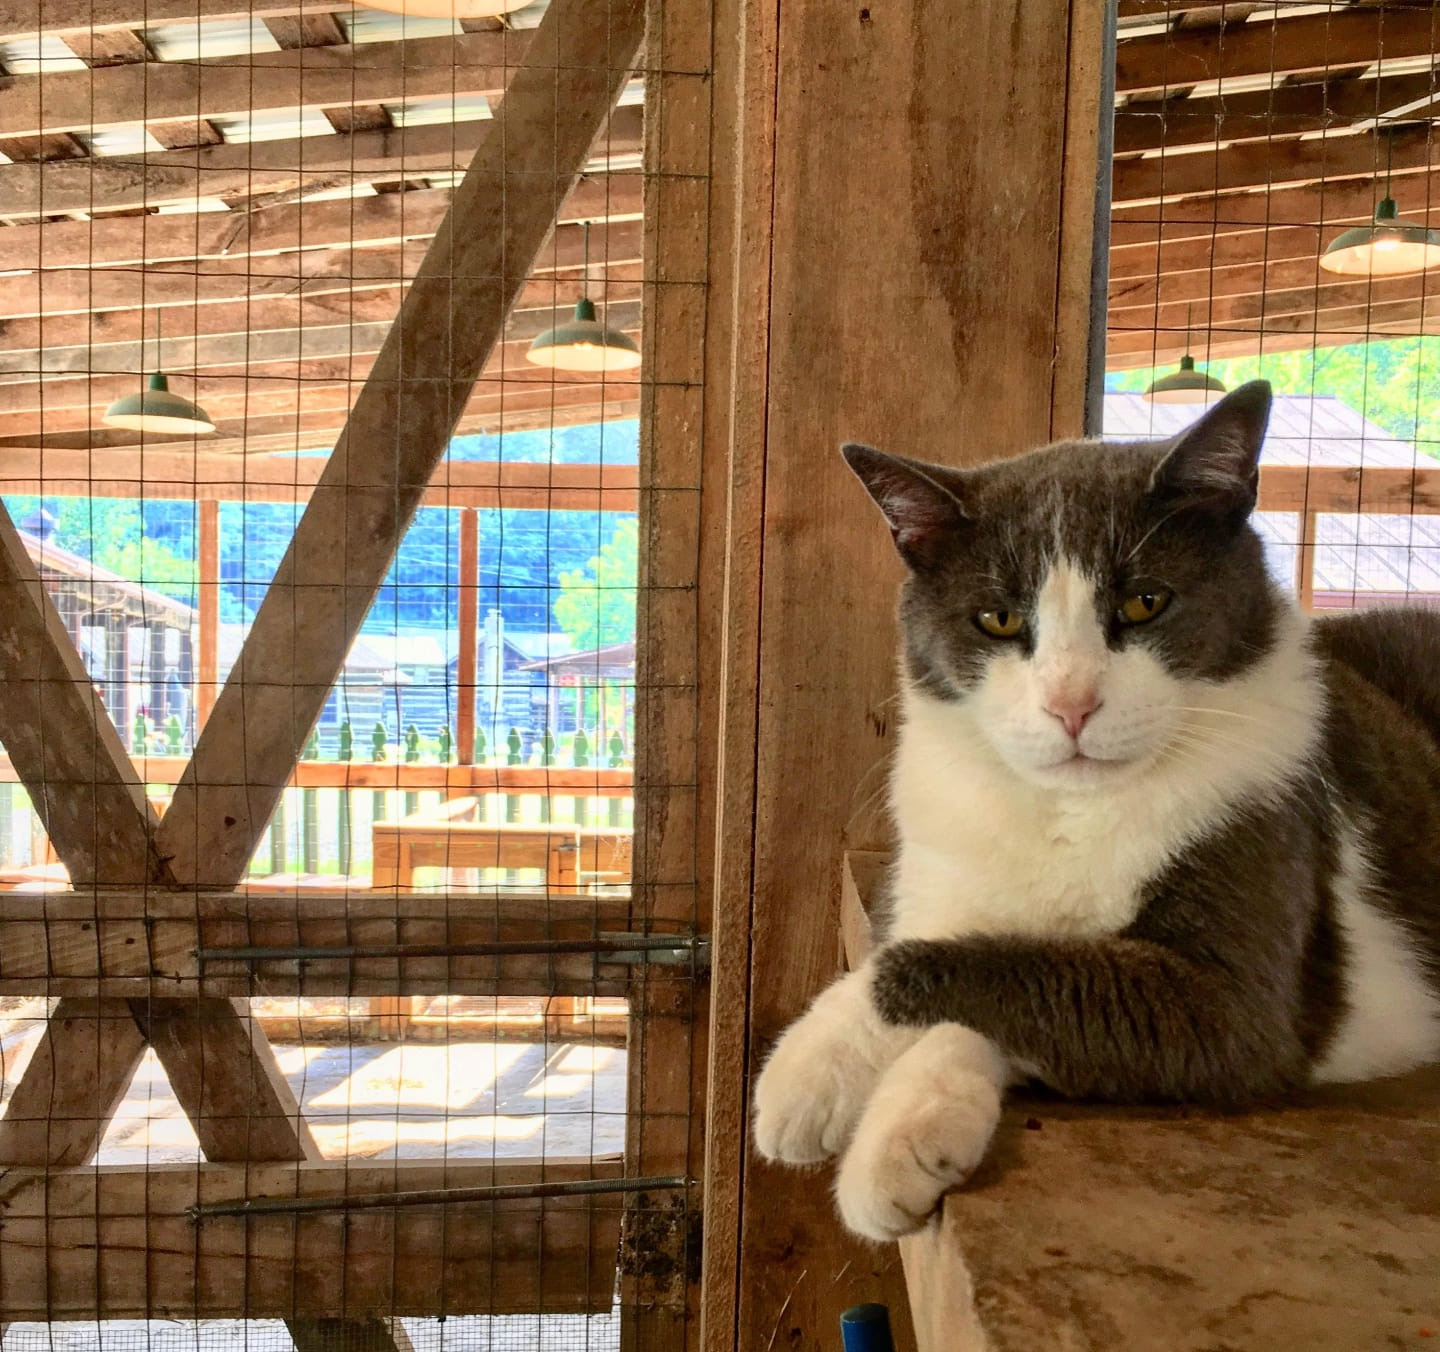 Charkey, one of the Petting Zoo's resident cats